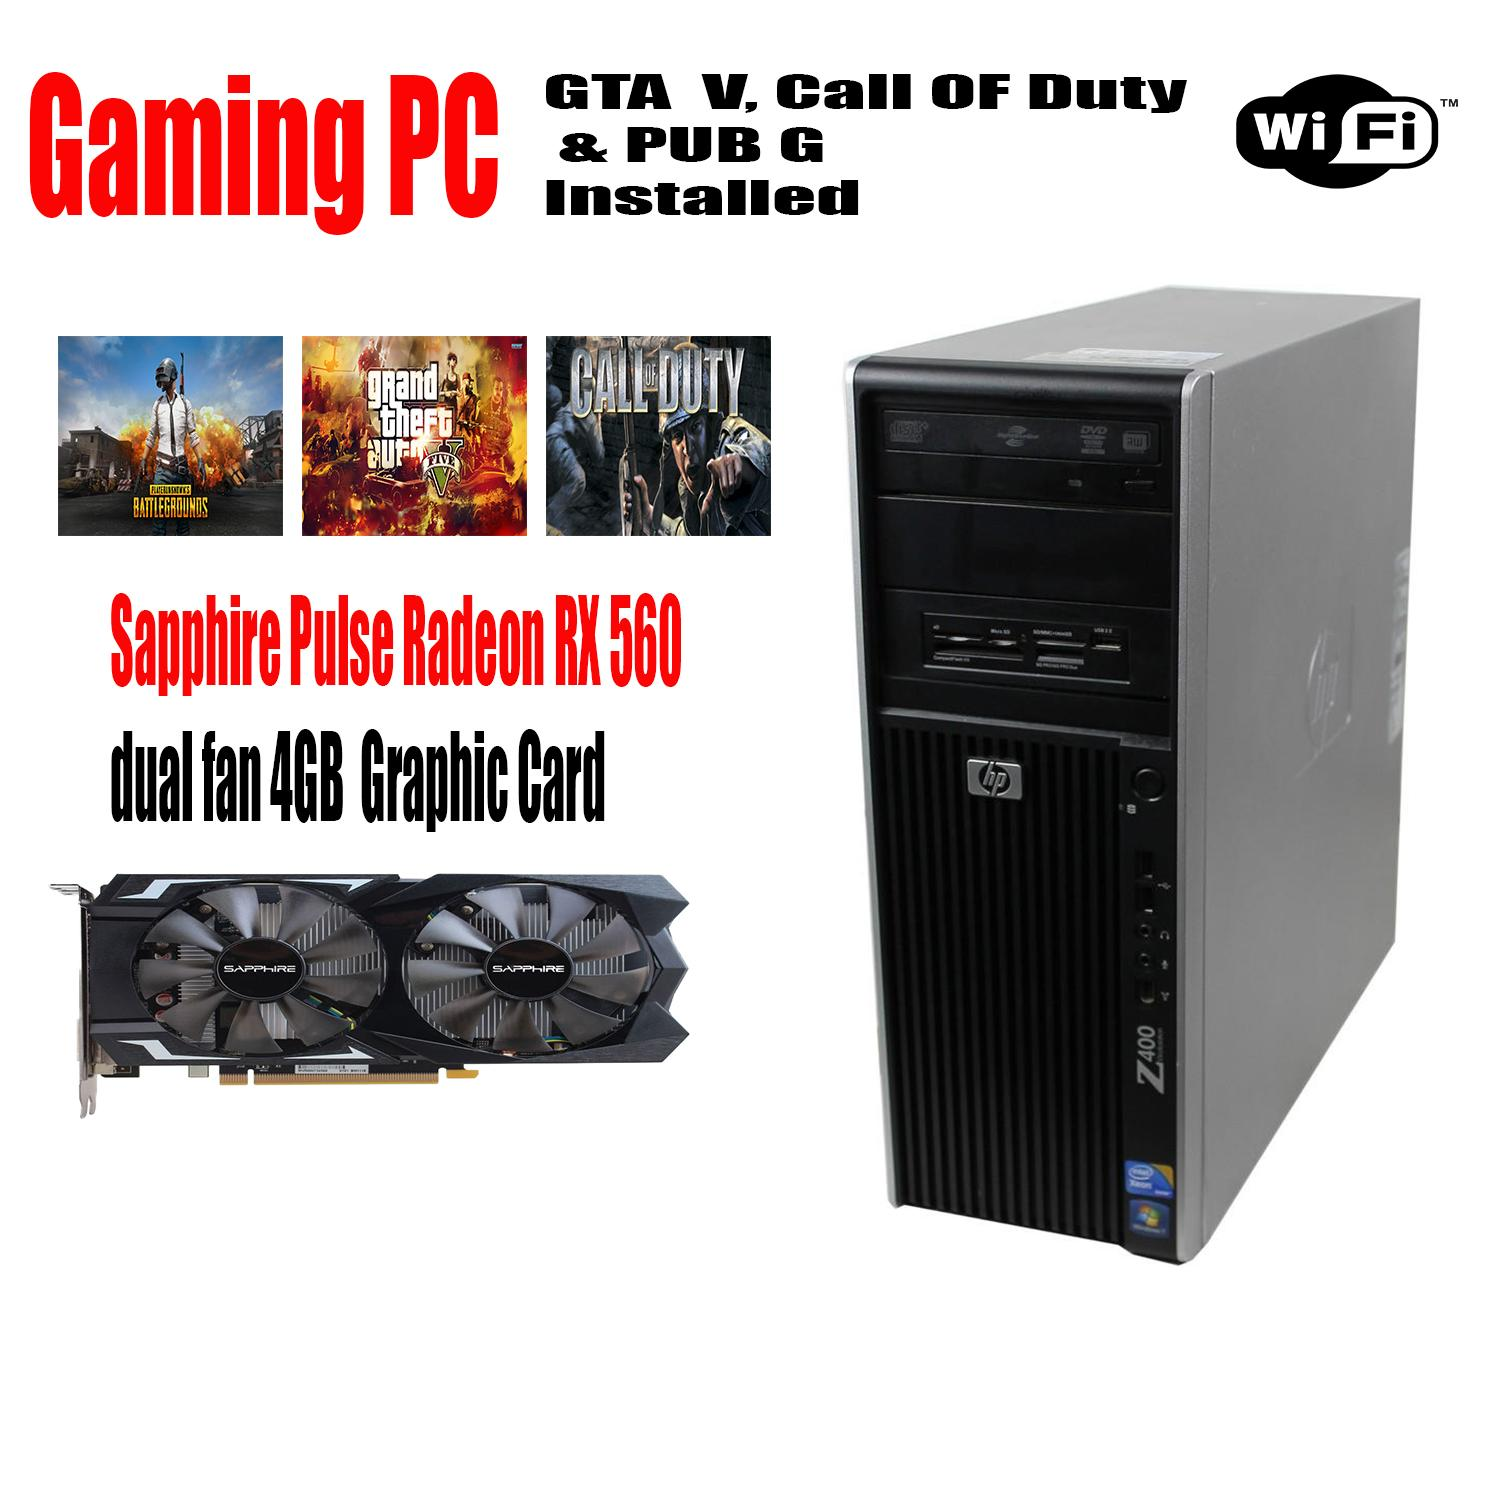 HP Z400 Gaming PC Xeon W3550 3 06 GHz - 16GB Ram - 1TB Hard drive - WIFI -  4GB DDR5 Graphic card 3 Games Installed